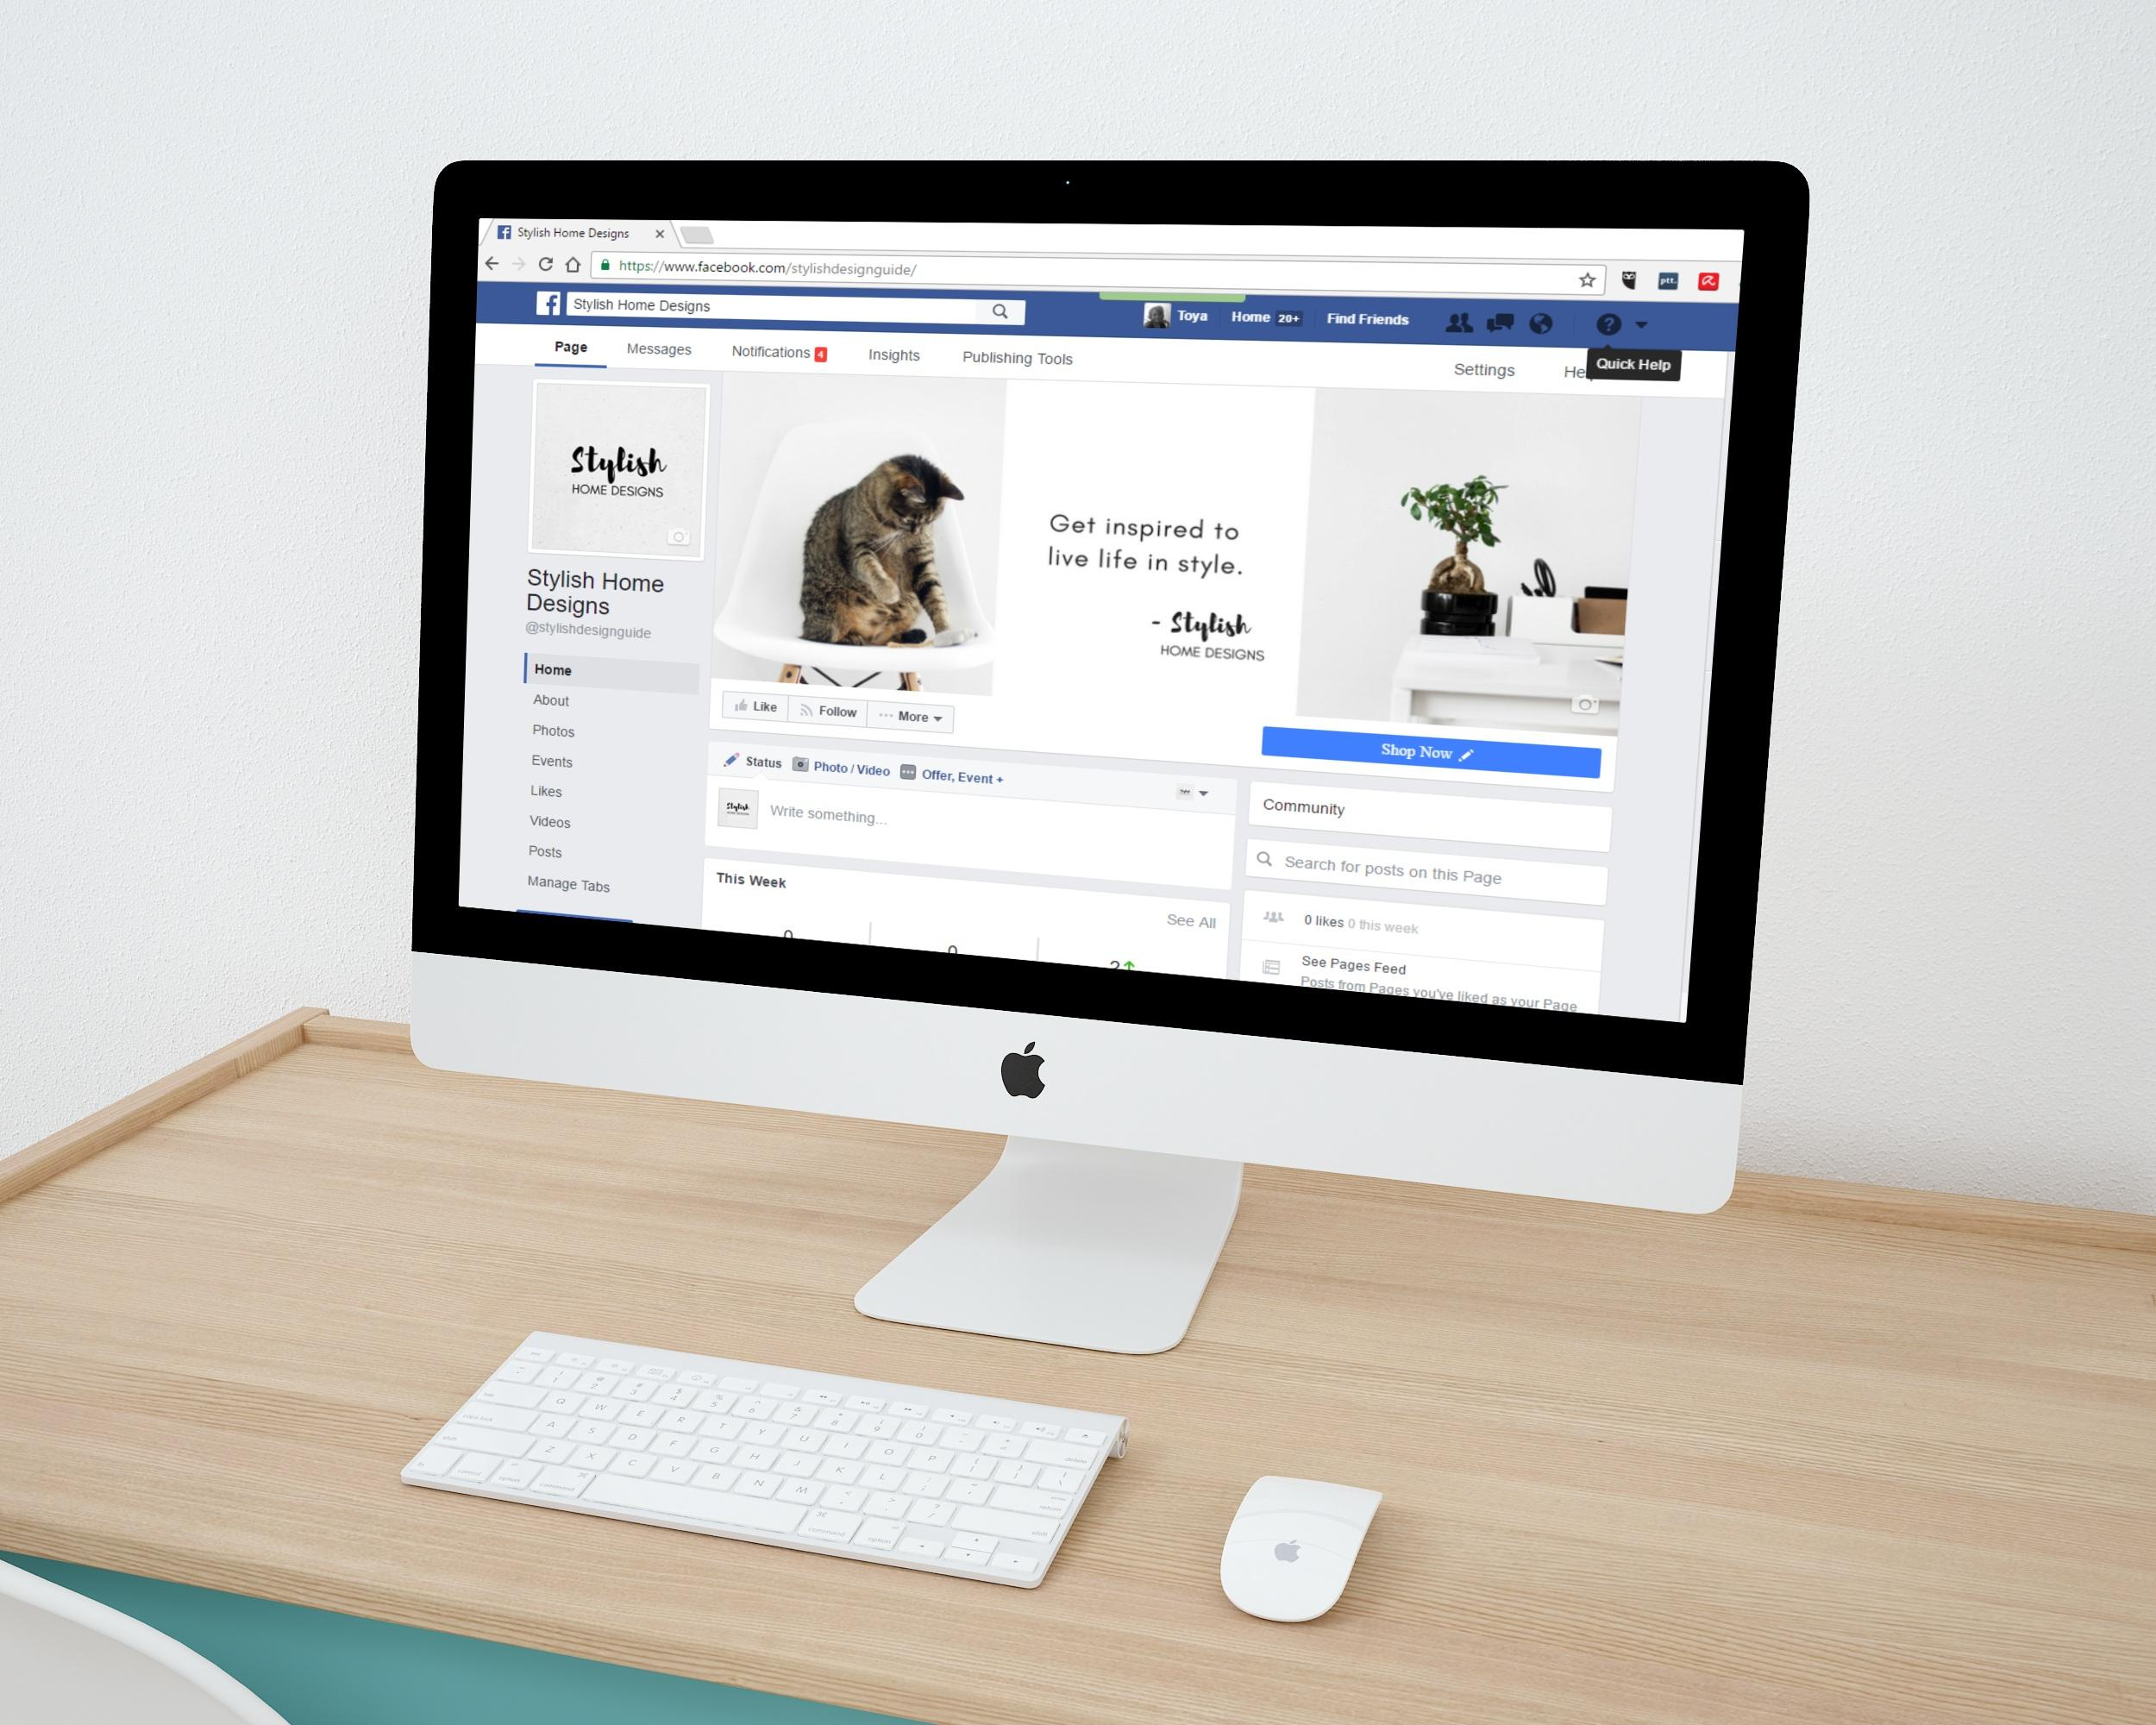 Facebook business page products